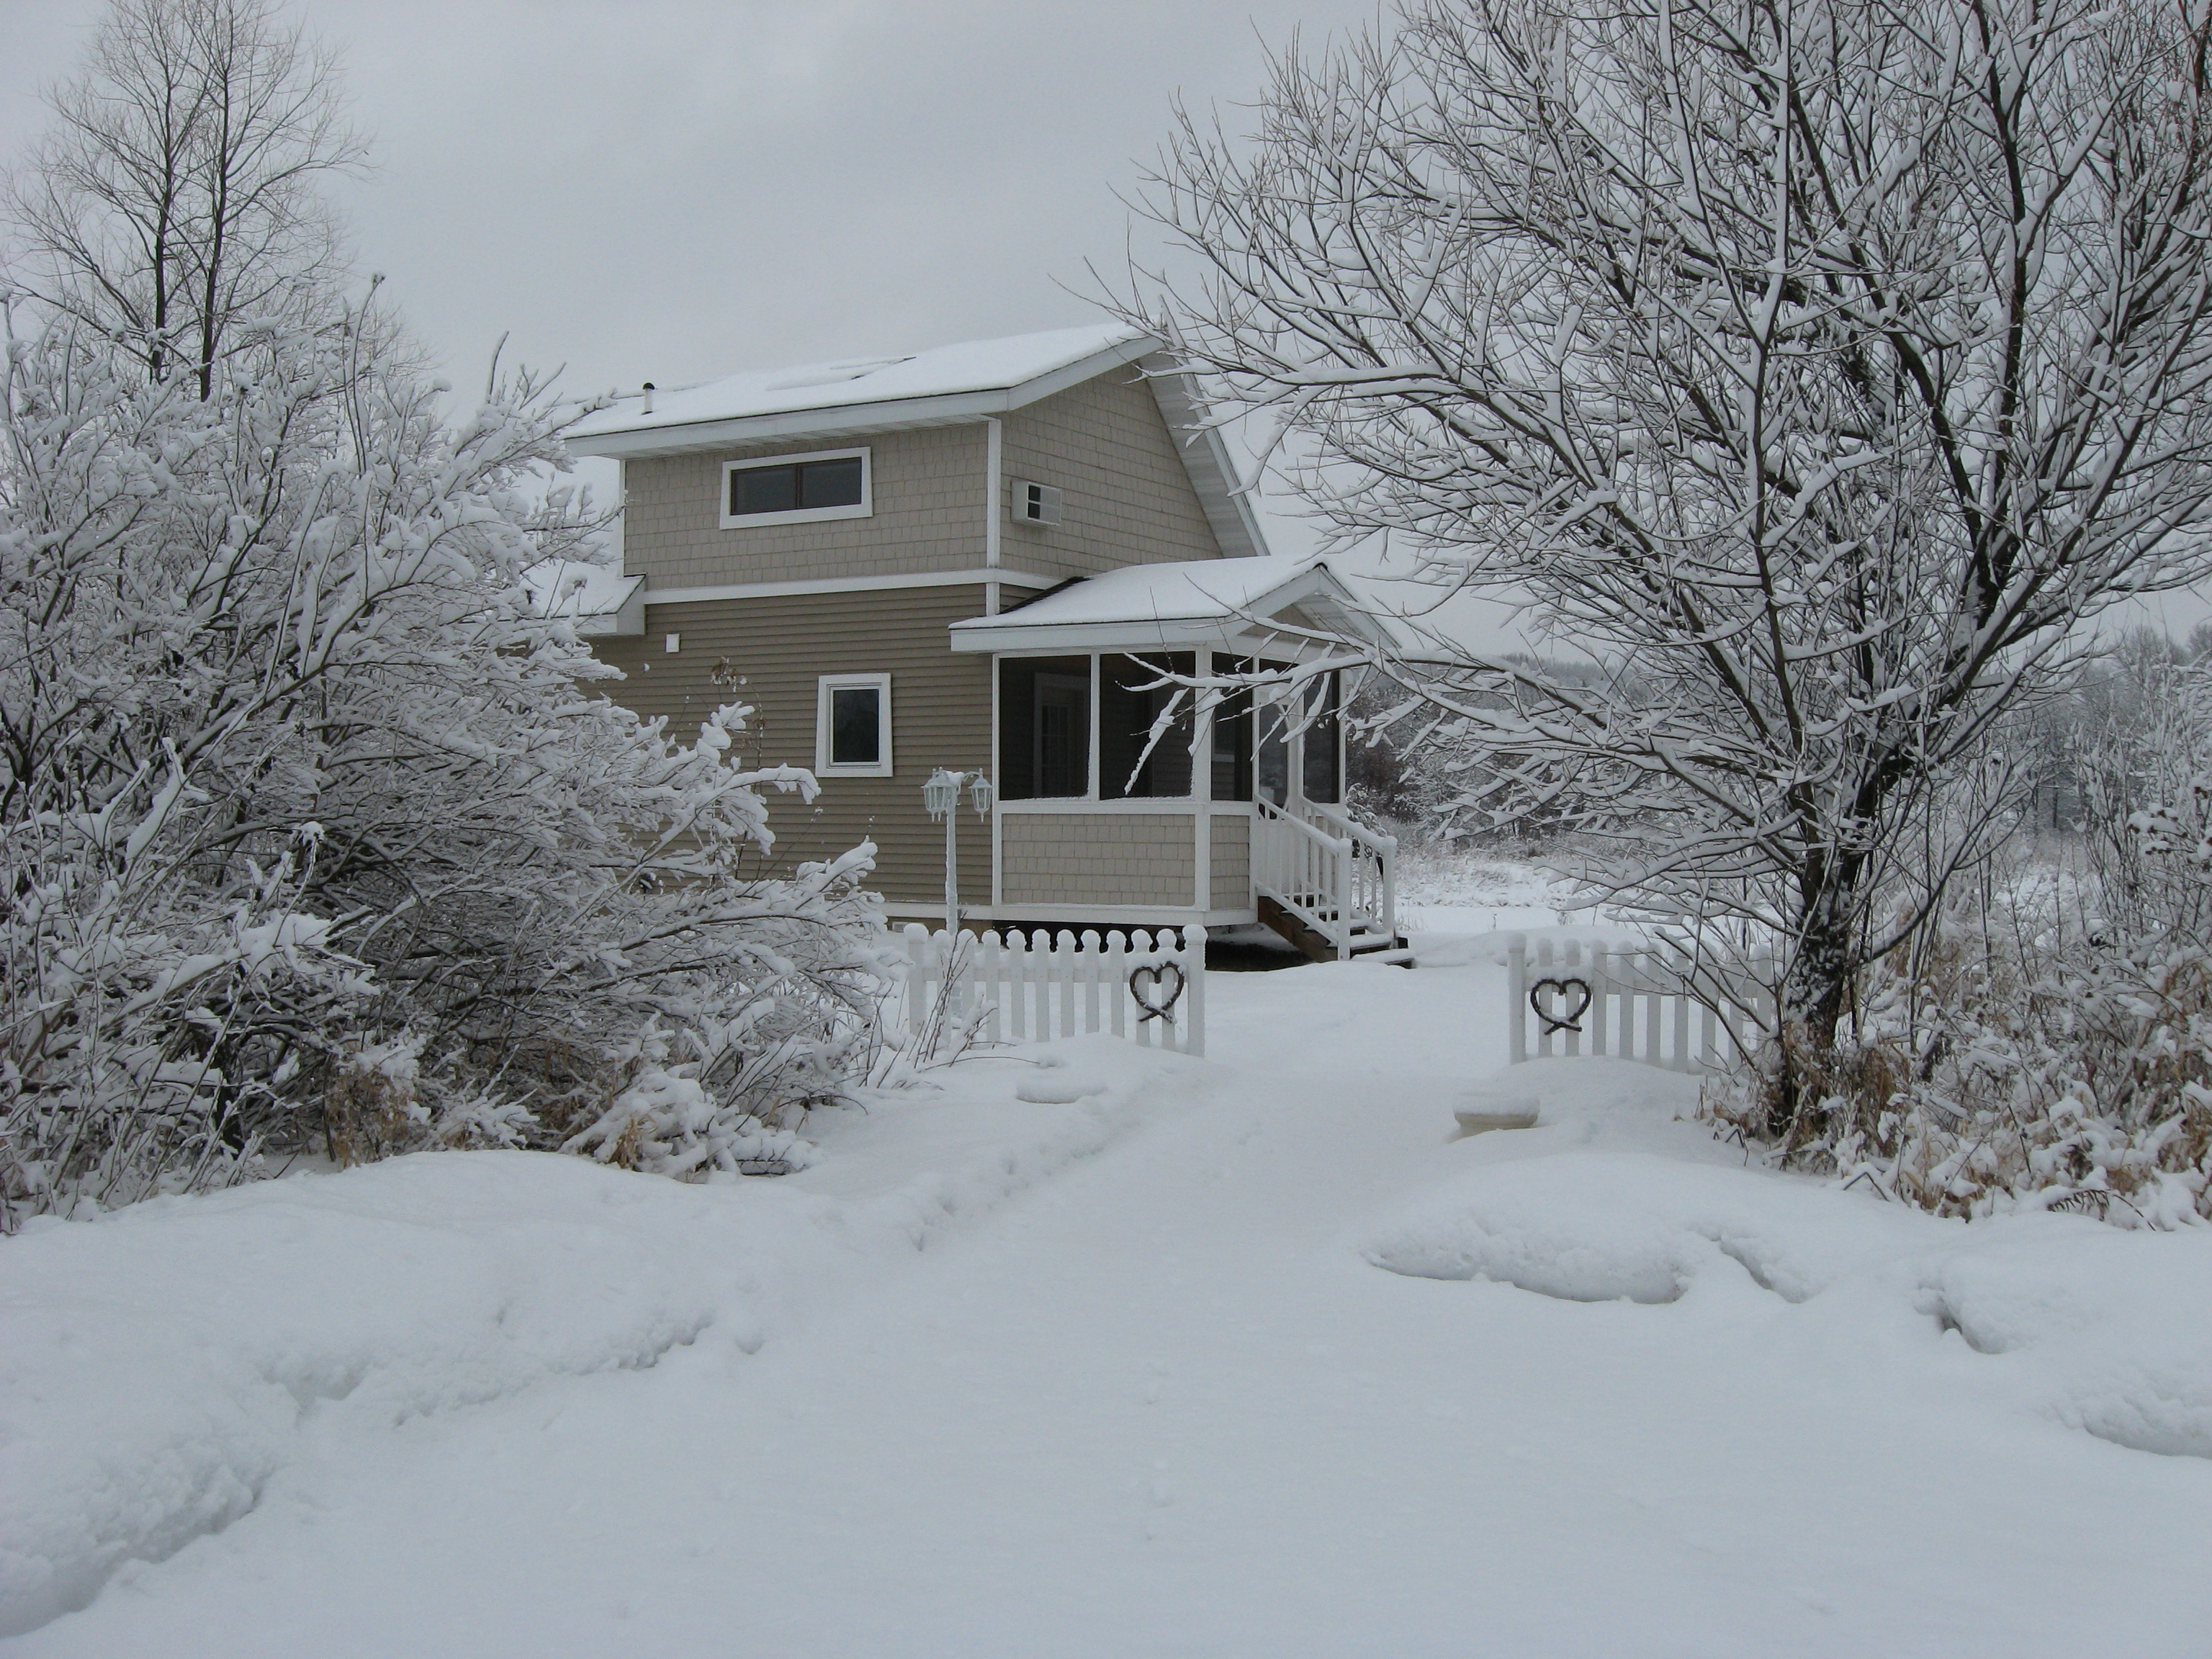 cottages rentals rent cottage vacation in article vrbo family wisconsin pet and friendly for top